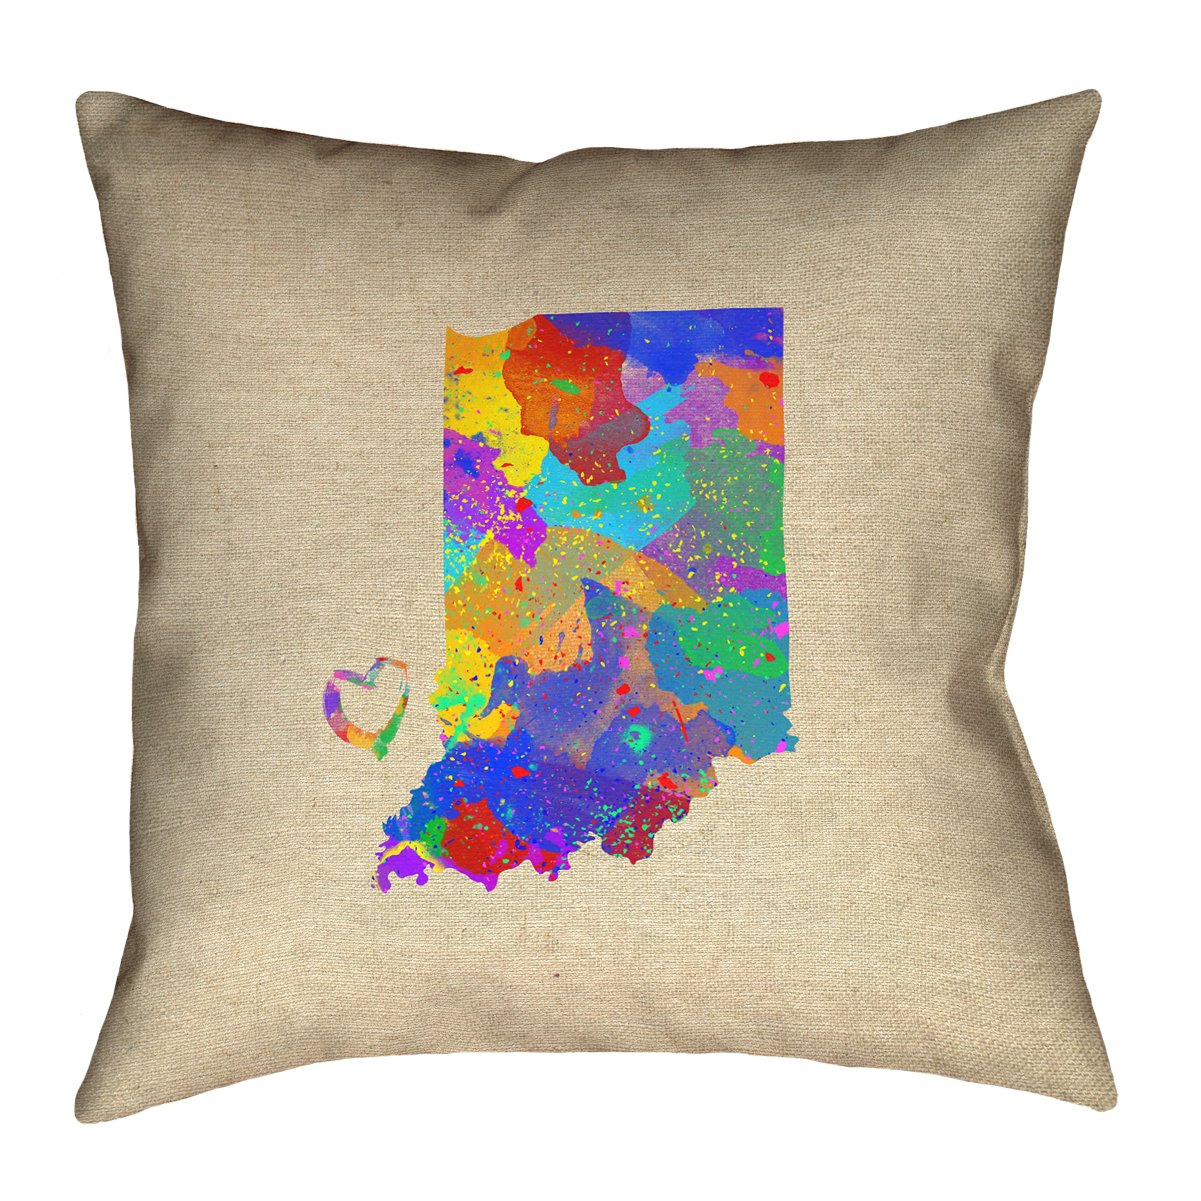 ArtVerse Katelyn Smith 26 x 26 Faux Suede Double Sided Print with Concealed Zipper /& Insert Indiana Love Watercolor Pillow